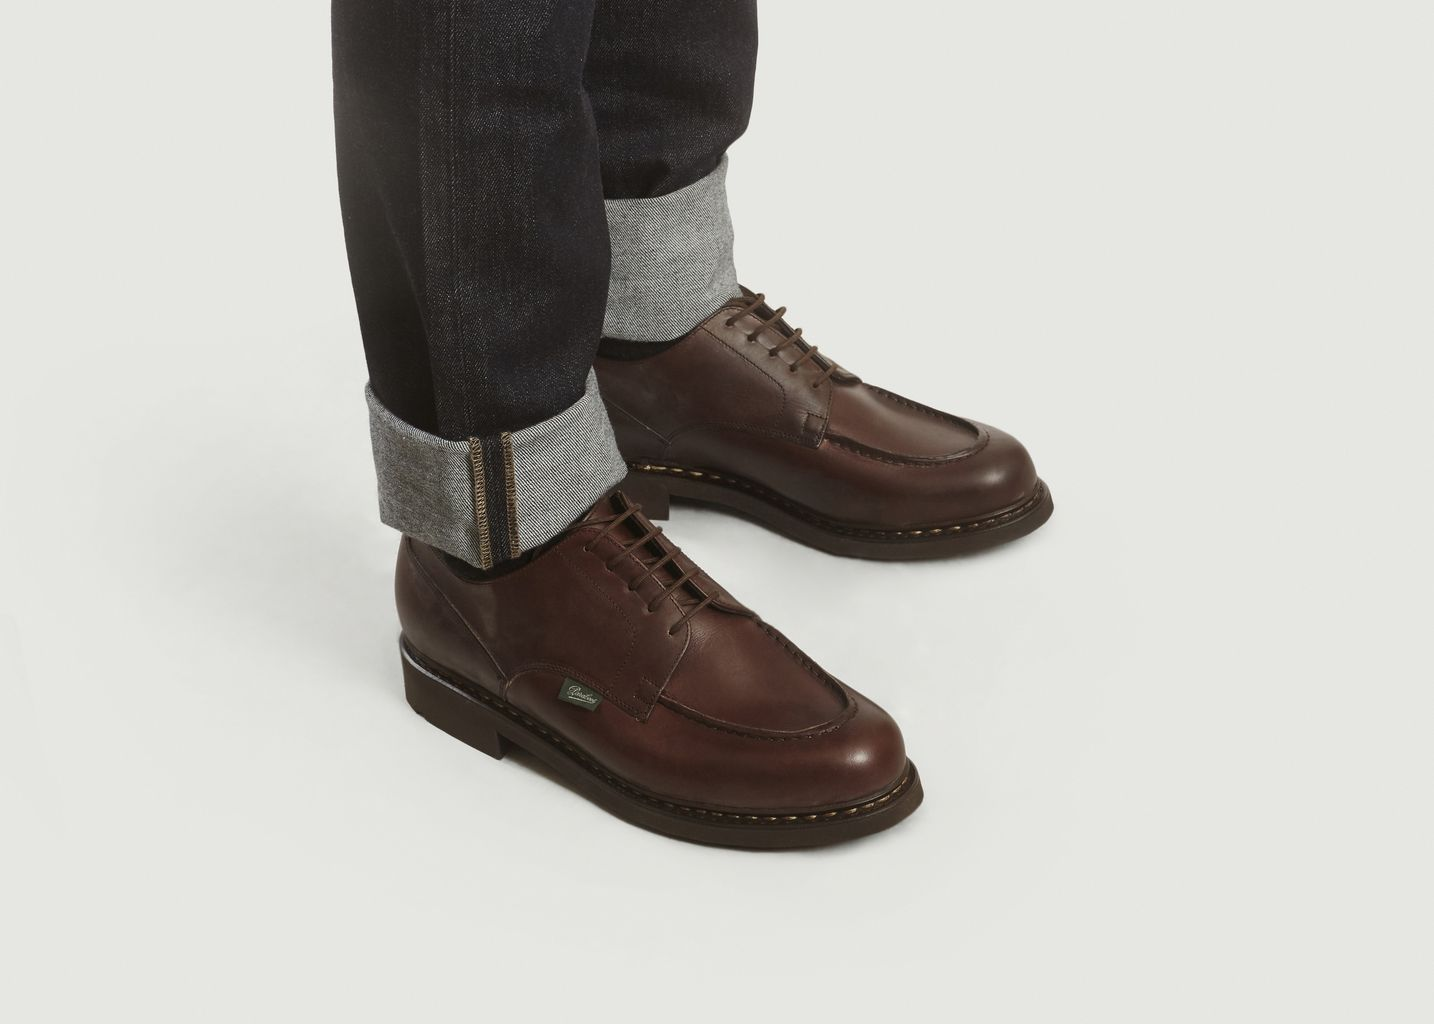 Chaussures Chambord - Paraboot